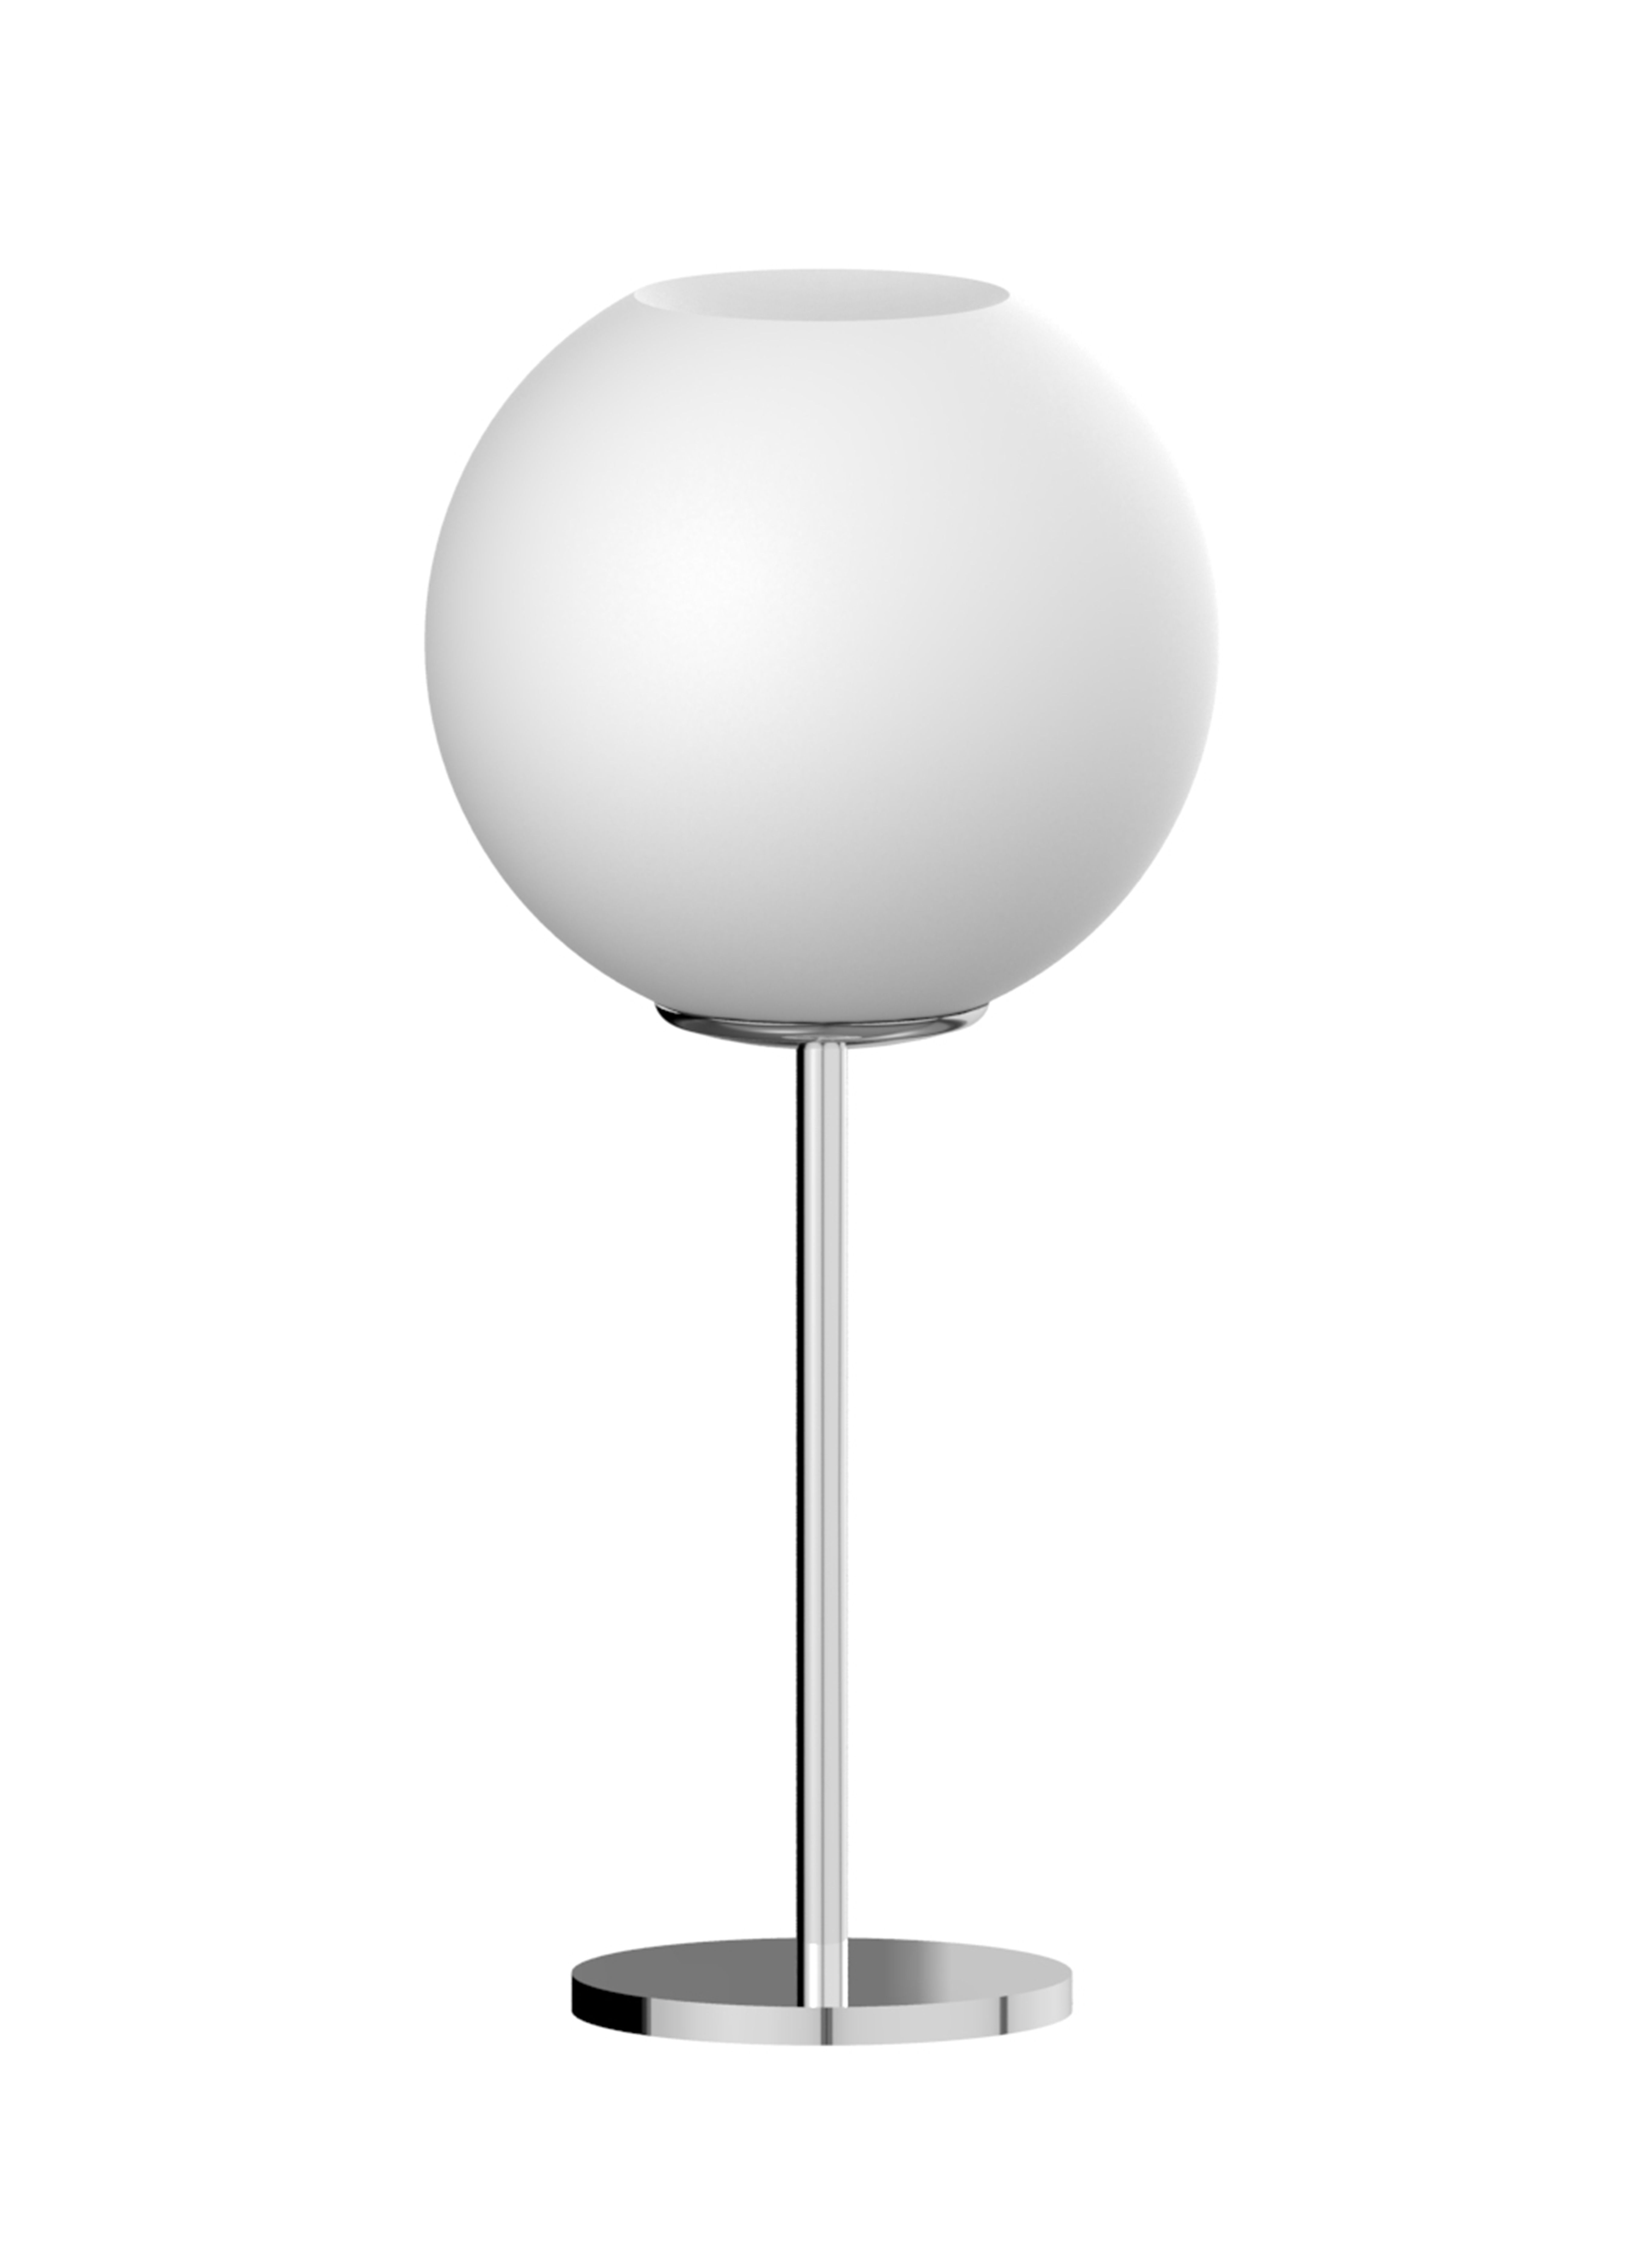 Modern glass table lamp - Mendoza Table Lamp Amazing Light Will Come Out Of This Elegant Light Fixture Globe Contemporary